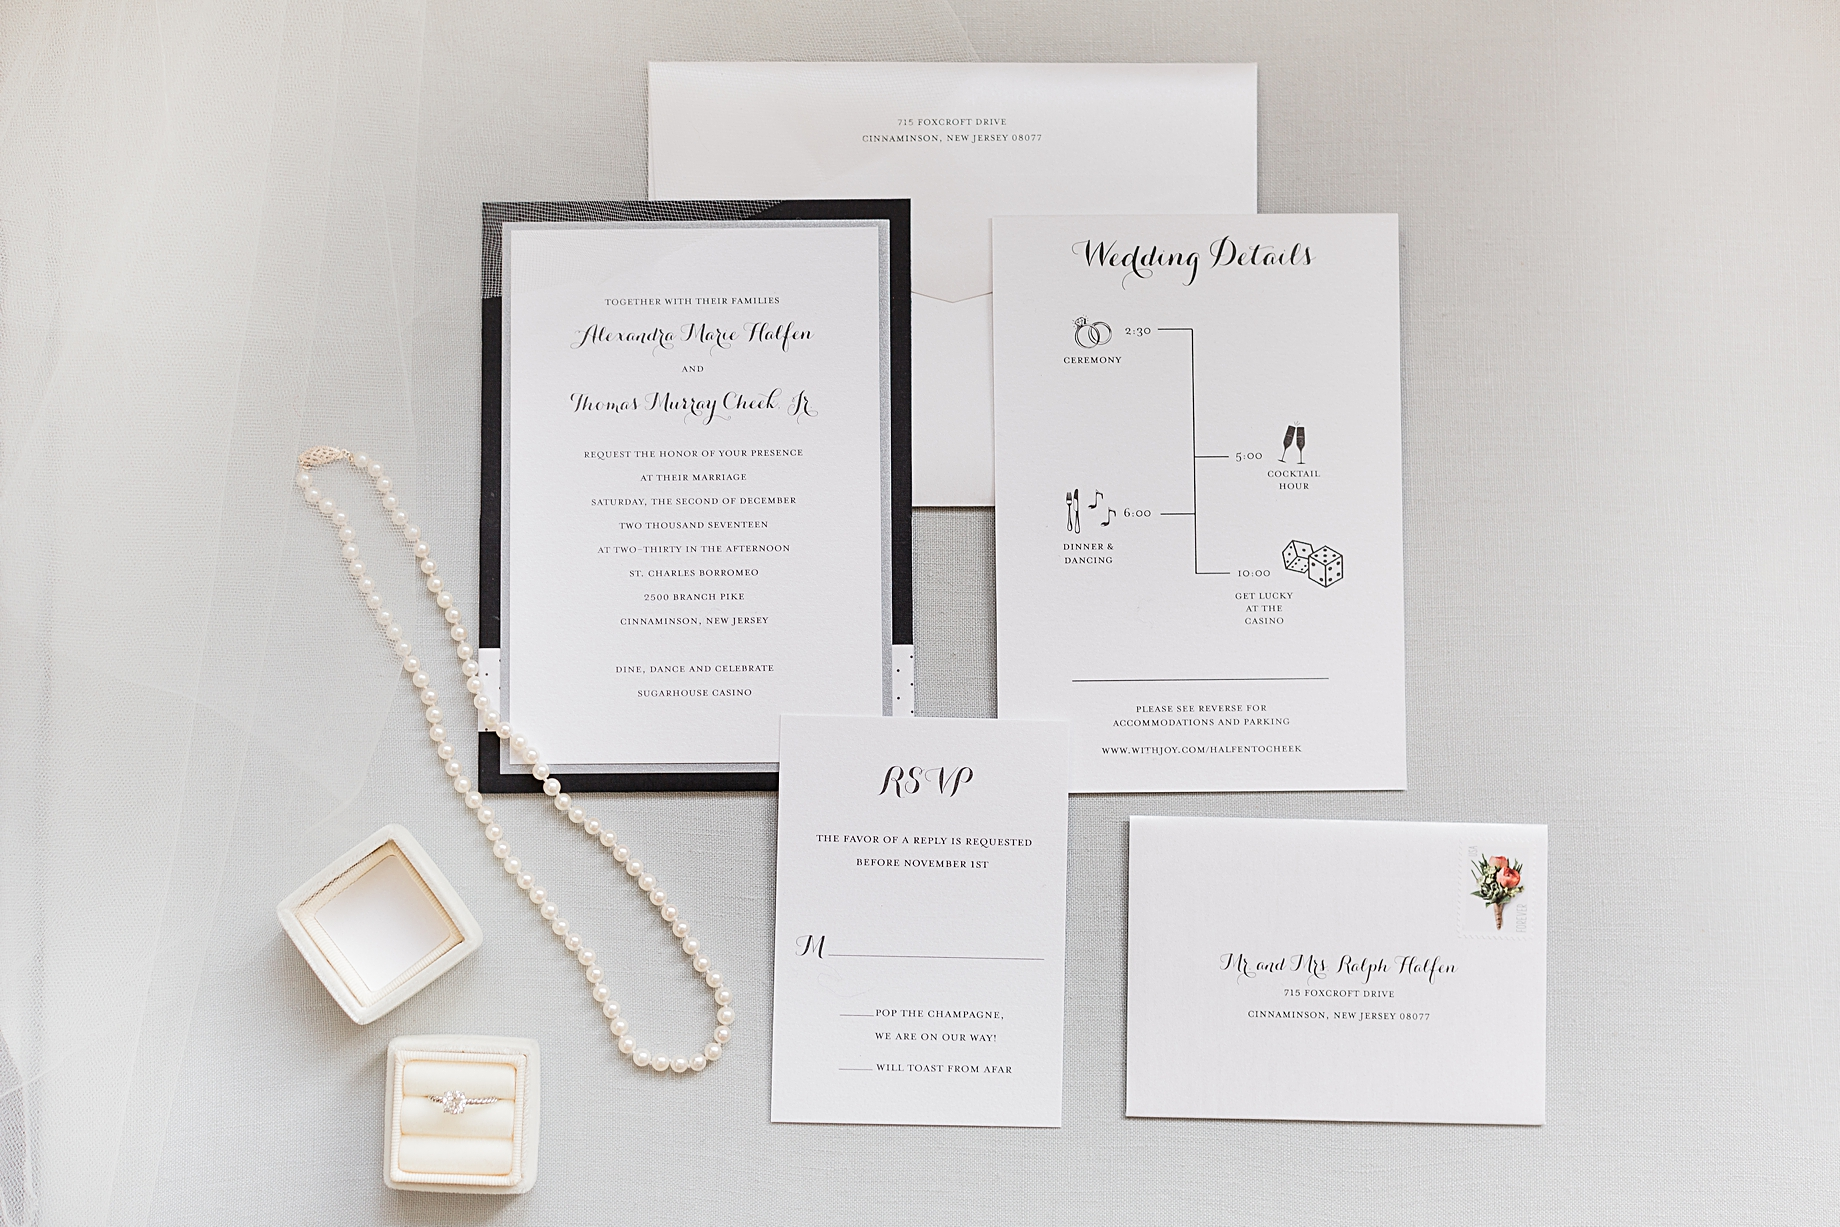 Invitation Suite by The Pleasure of Your Company | Philadelphia Winter Wedding